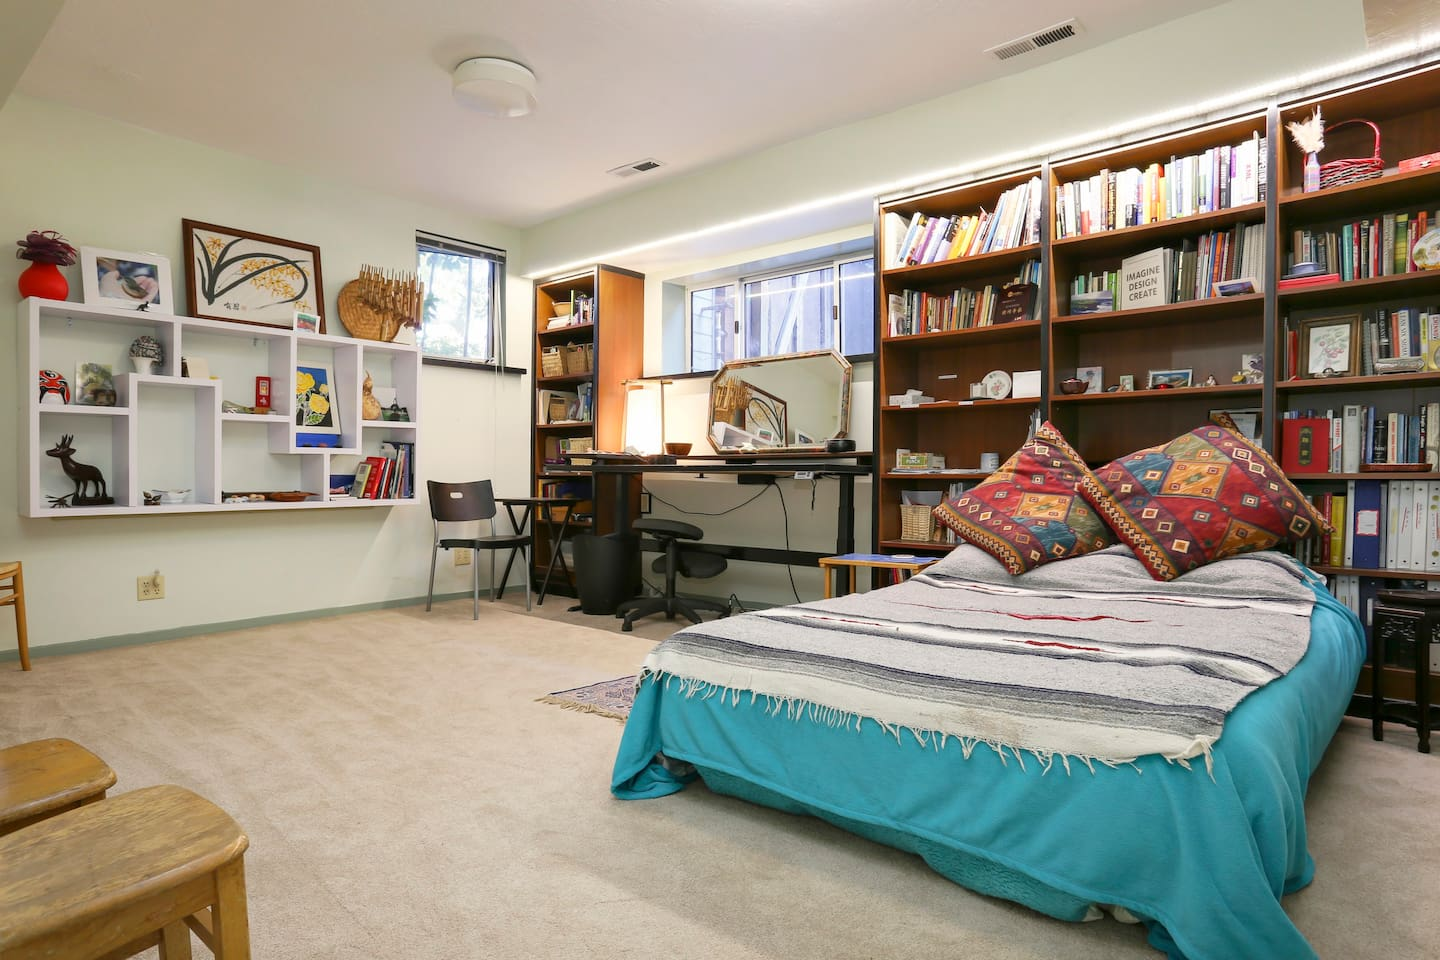 Spacious book filled room that offers a calm and restful space. The desk adjusts to standing height or seating.